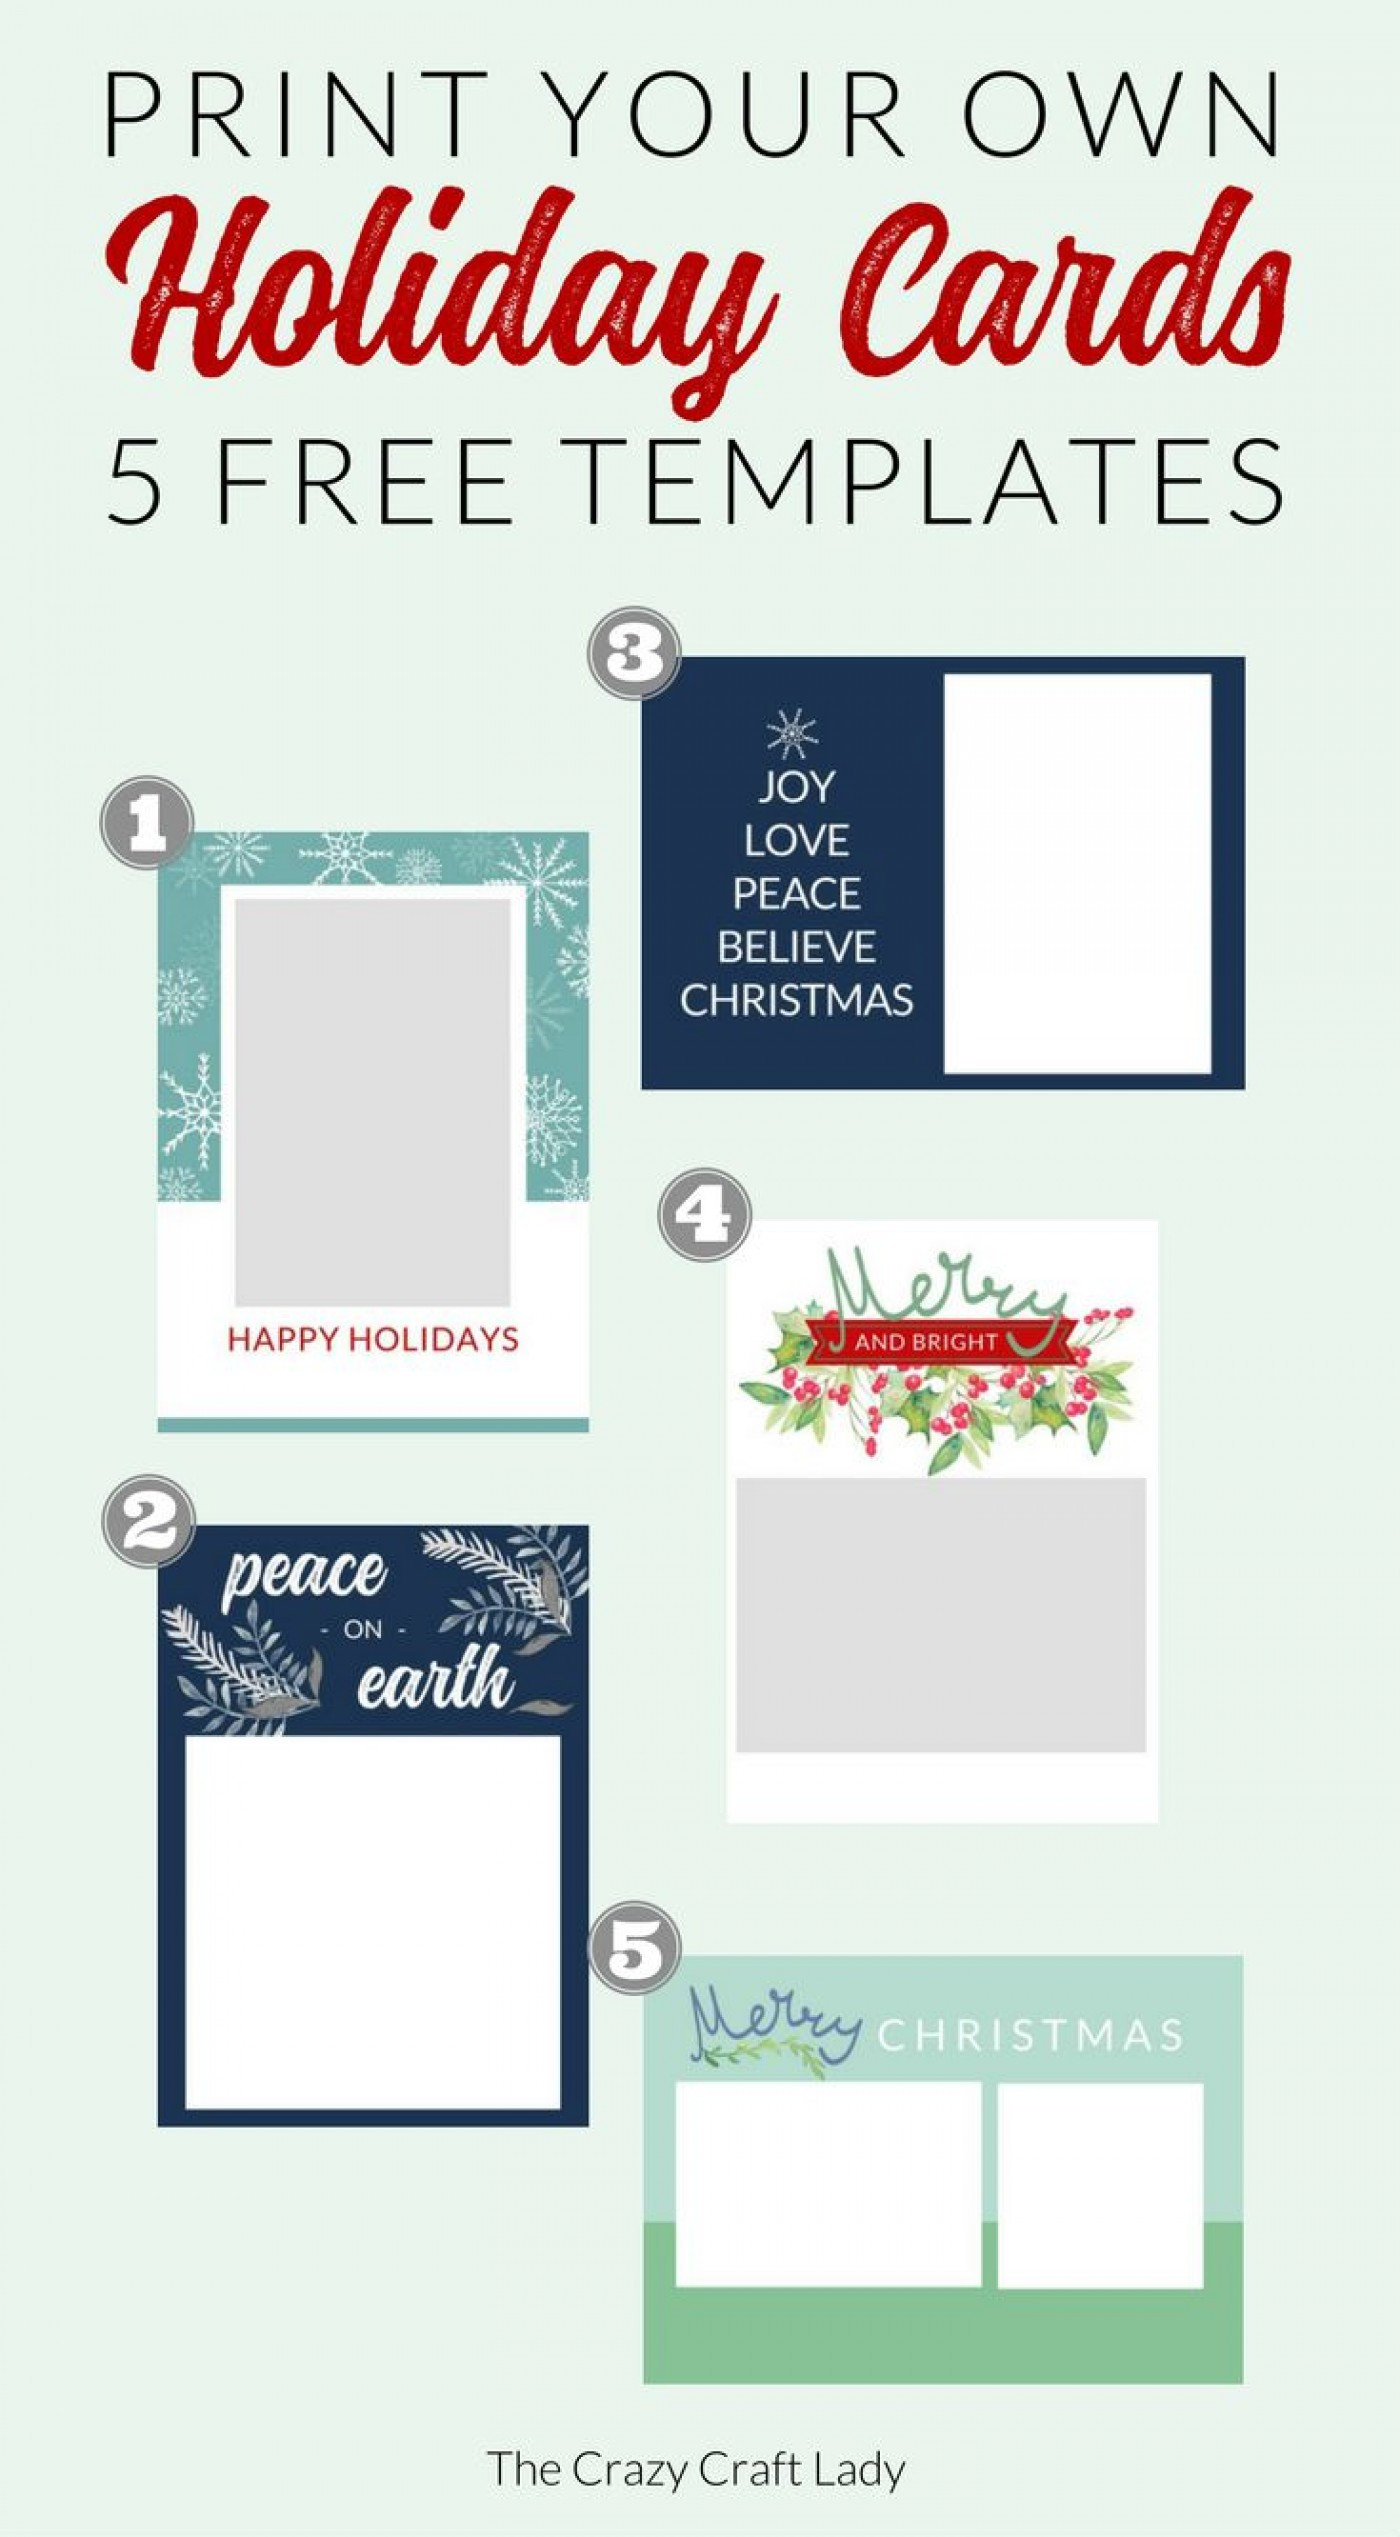 007 Fantastic Free Download Holiday Card Template Concept 1400